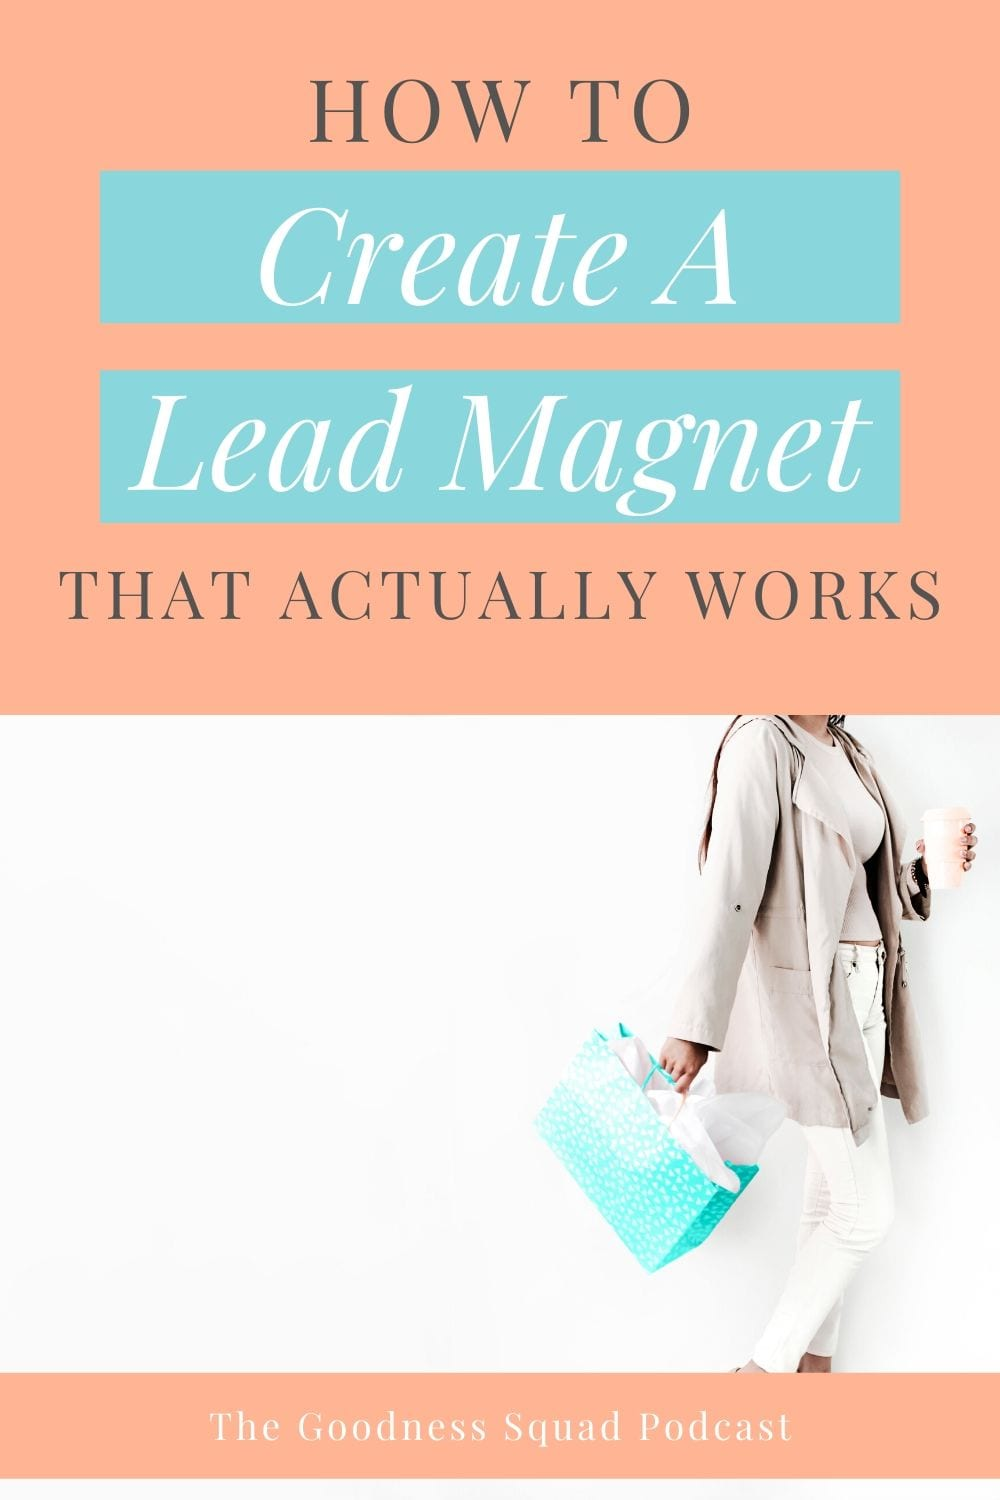 019 How to create a lead magnet that works